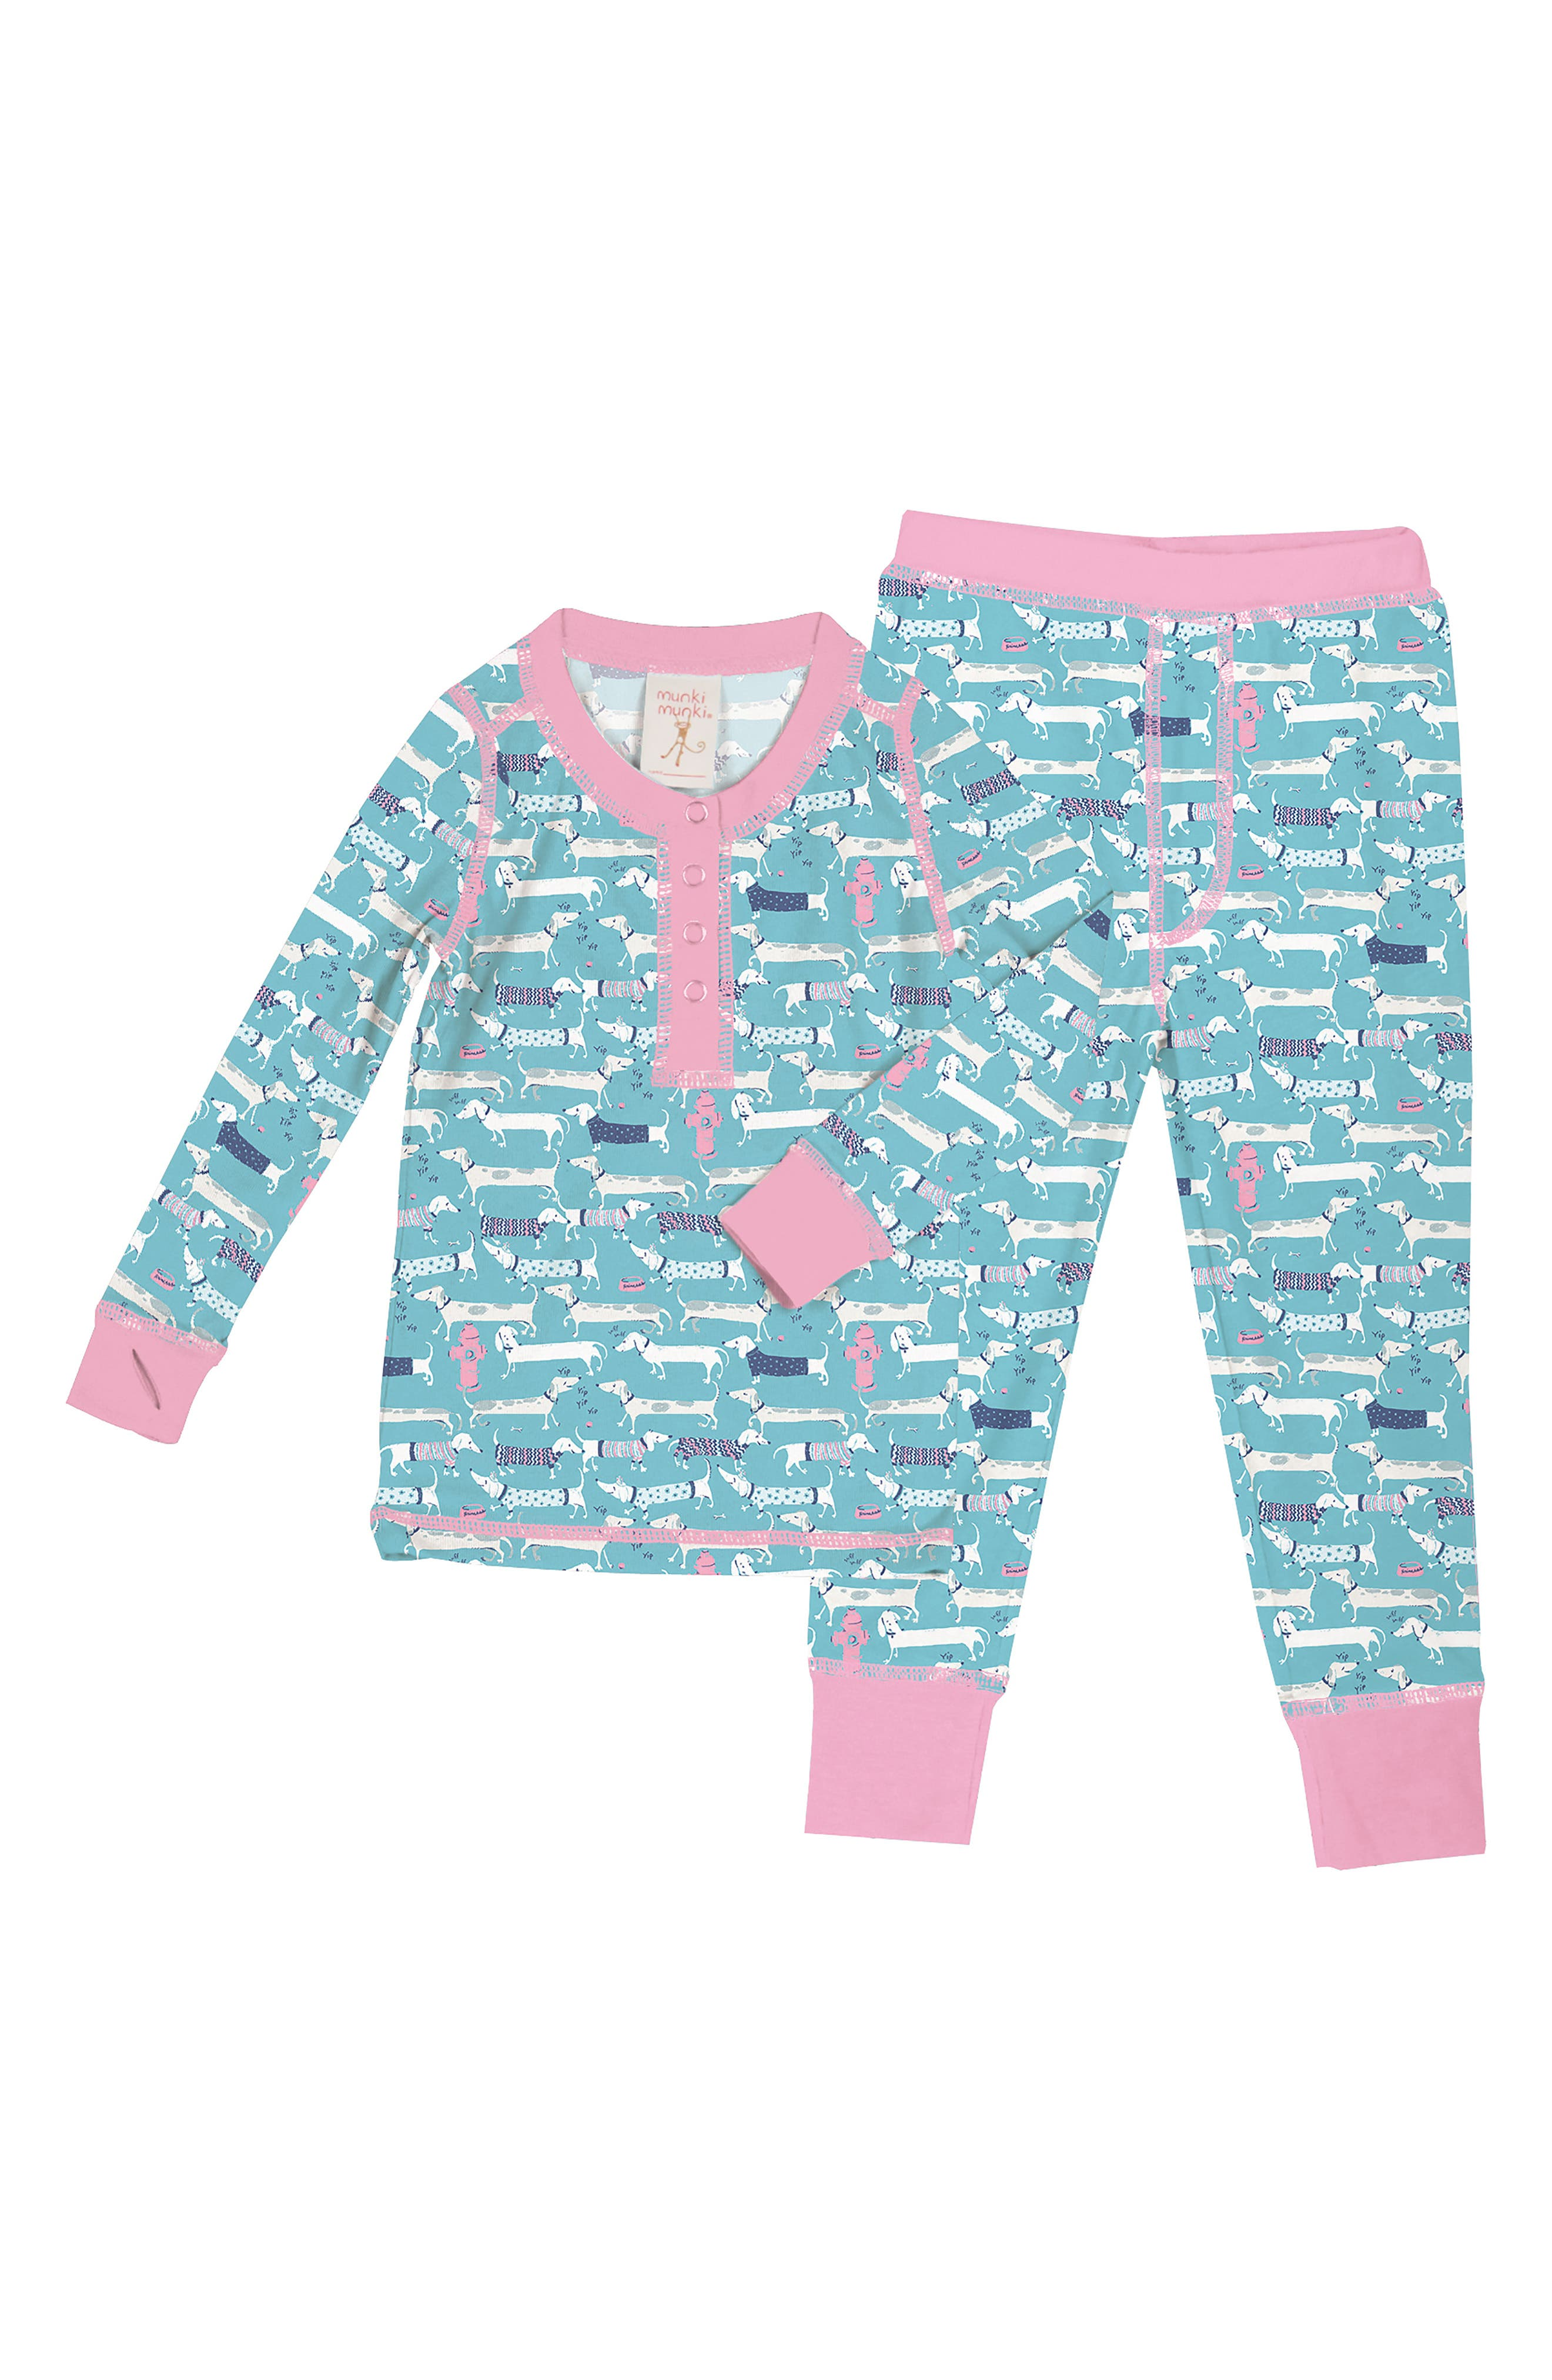 MUNKI MUNKI,                             Sweater Dogs Fitted Two-Piece Pajamas,                             Main thumbnail 1, color,                             BLUE